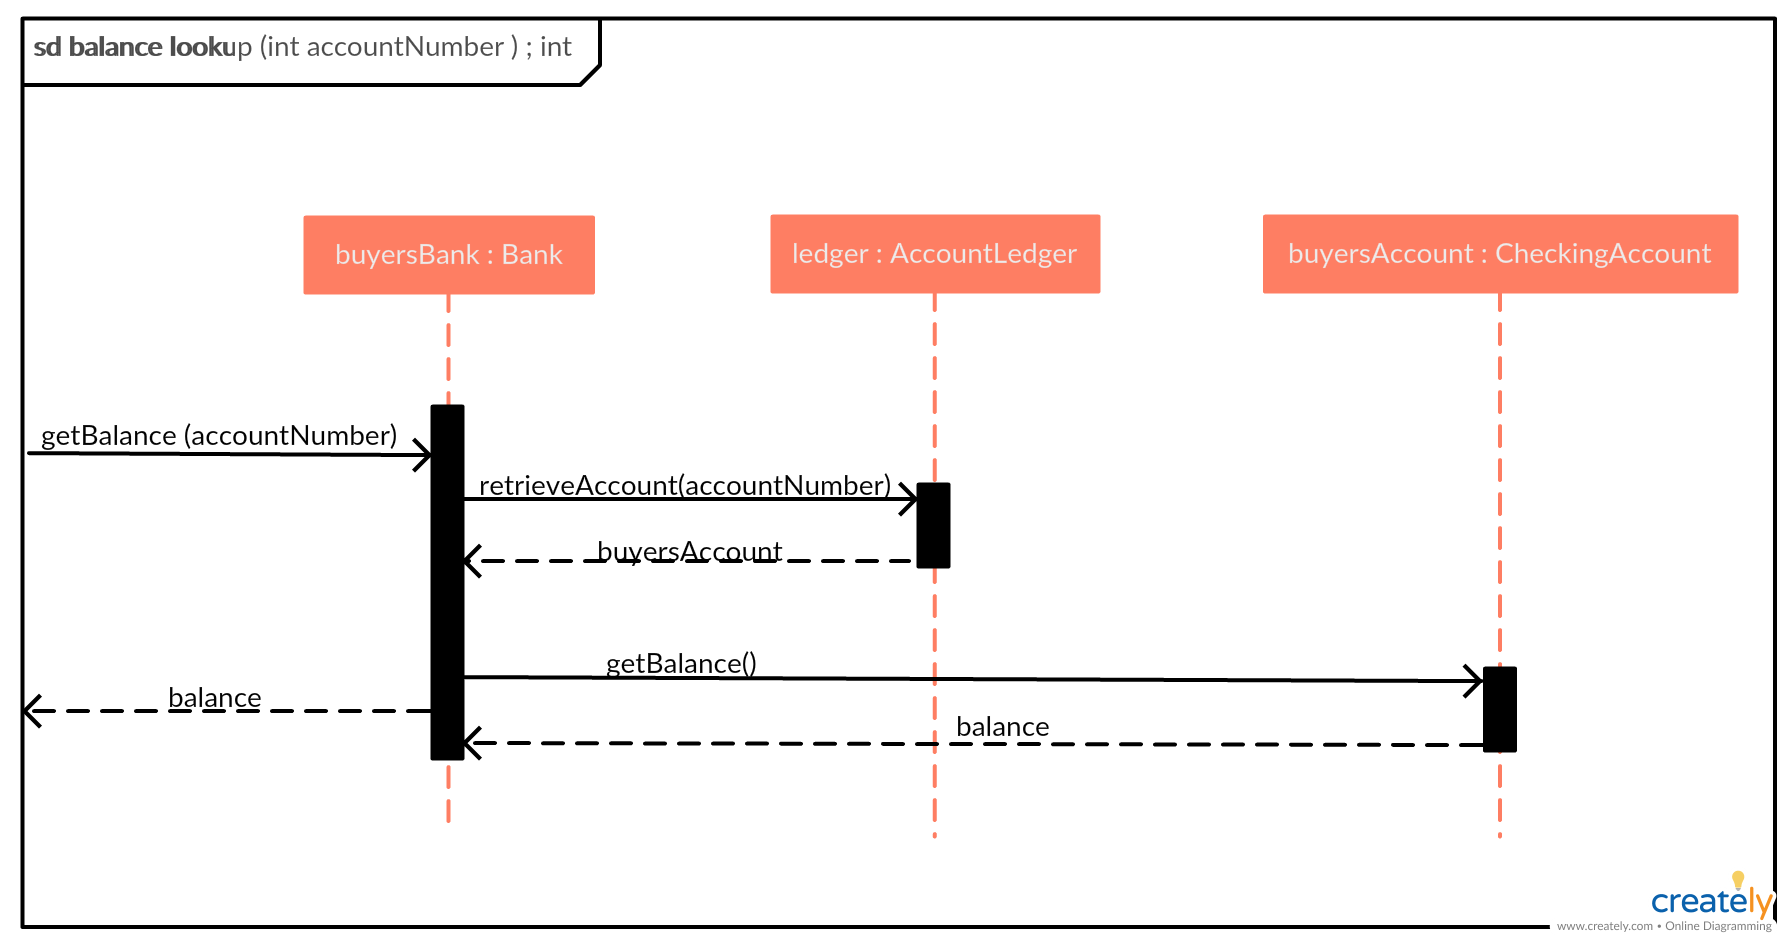 medium resolution of balance lookup sequence diagram example click the image to get all the important aspects